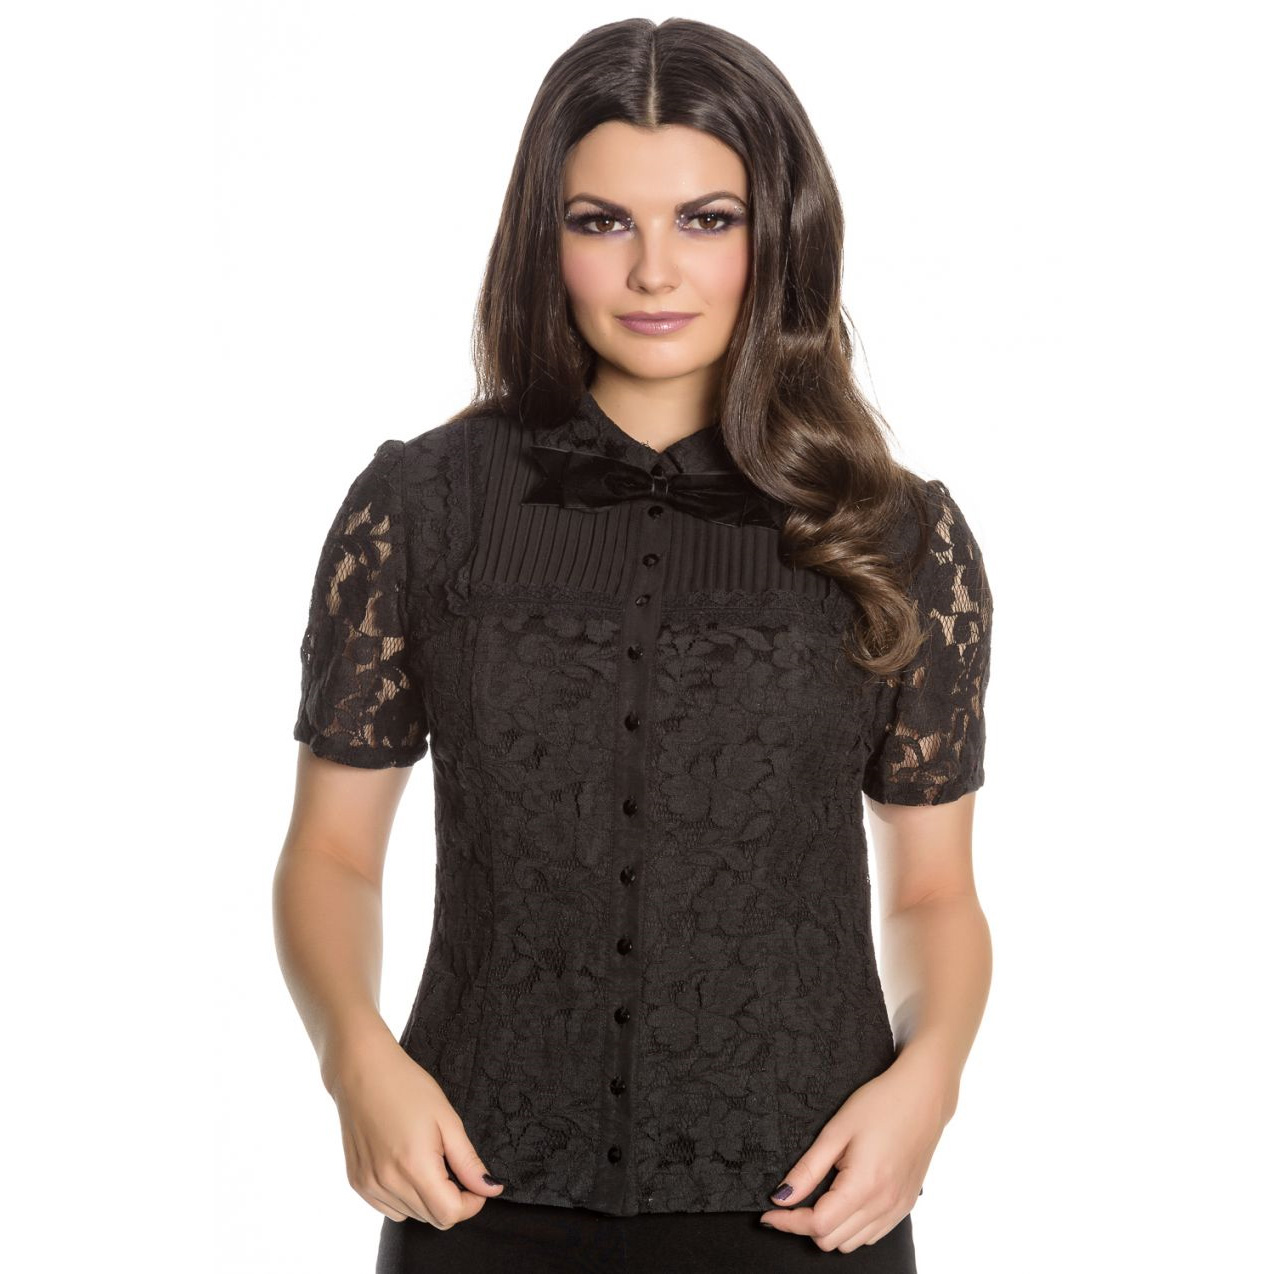 Hell-Bunny-Spin-Doctor-Vampire-Gothic-Shirt-Top-ROWENA-Lace-Blouse-All-Sizes Indexbild 3